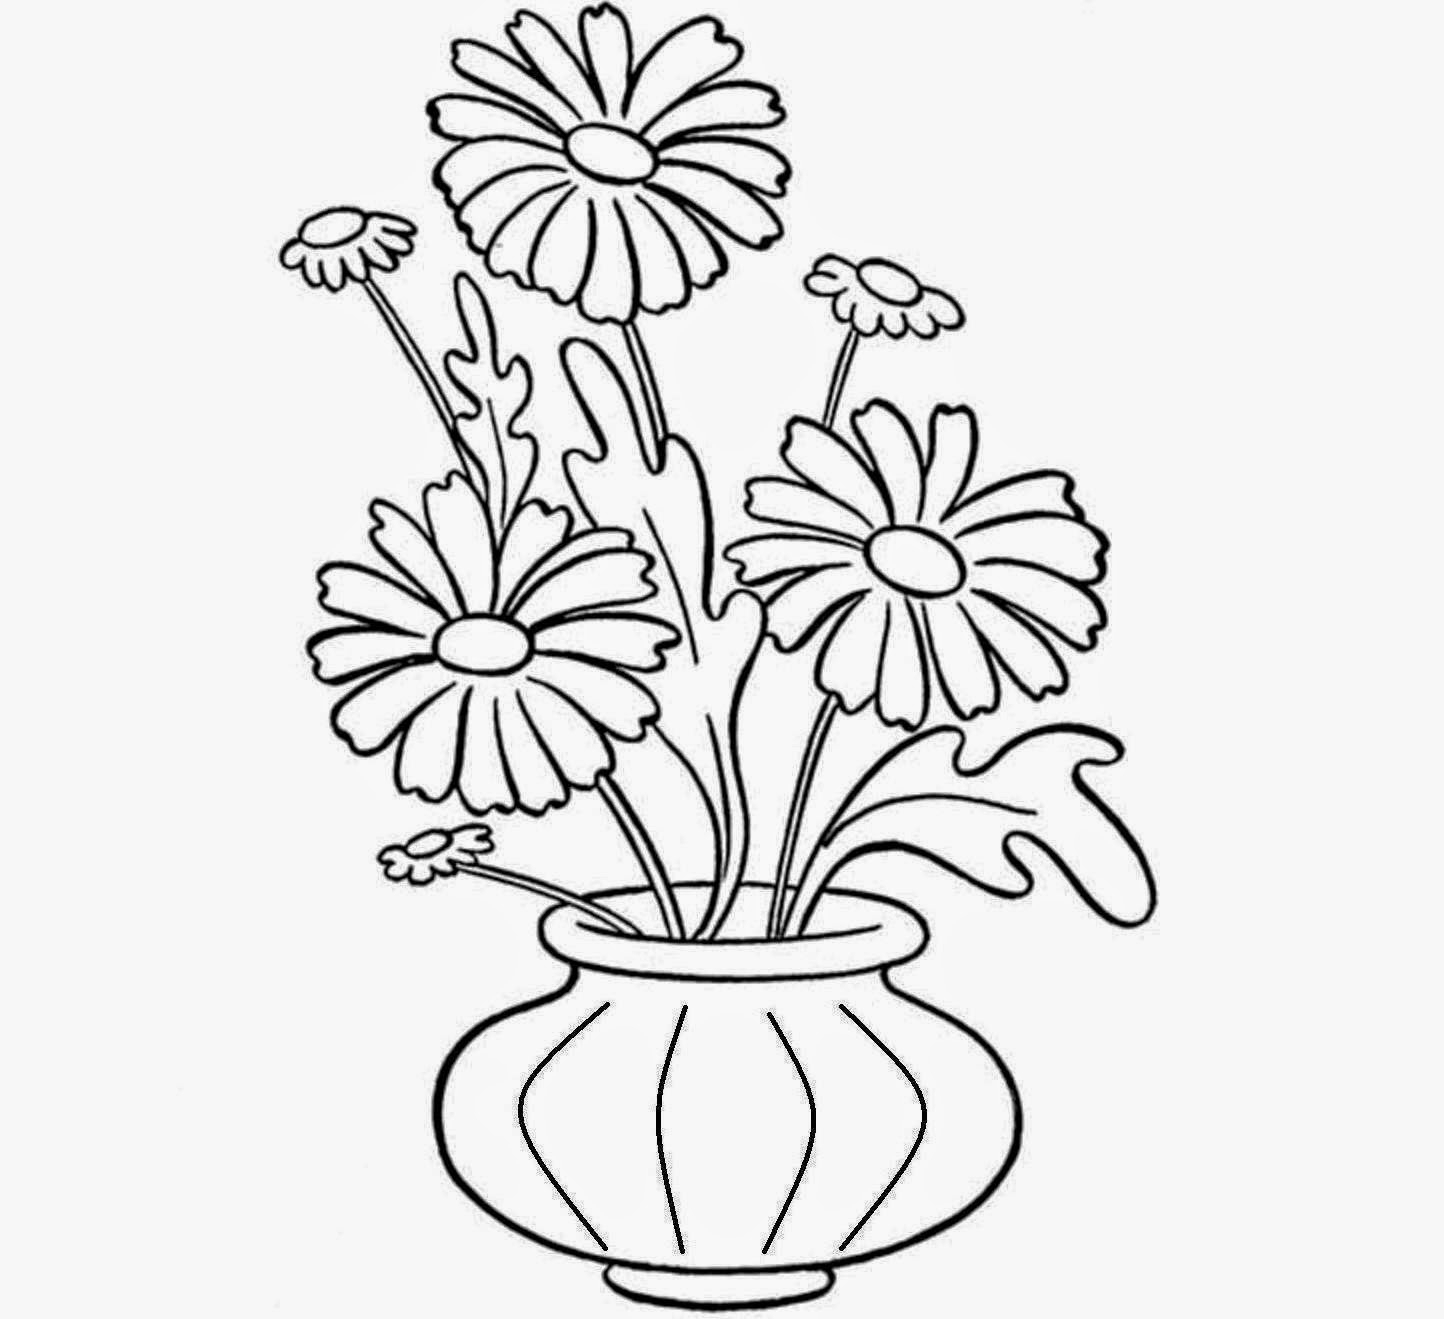 1444x1319 Drawings Vases Of Flowers How To Draw Realistic Flowers, Stepstep